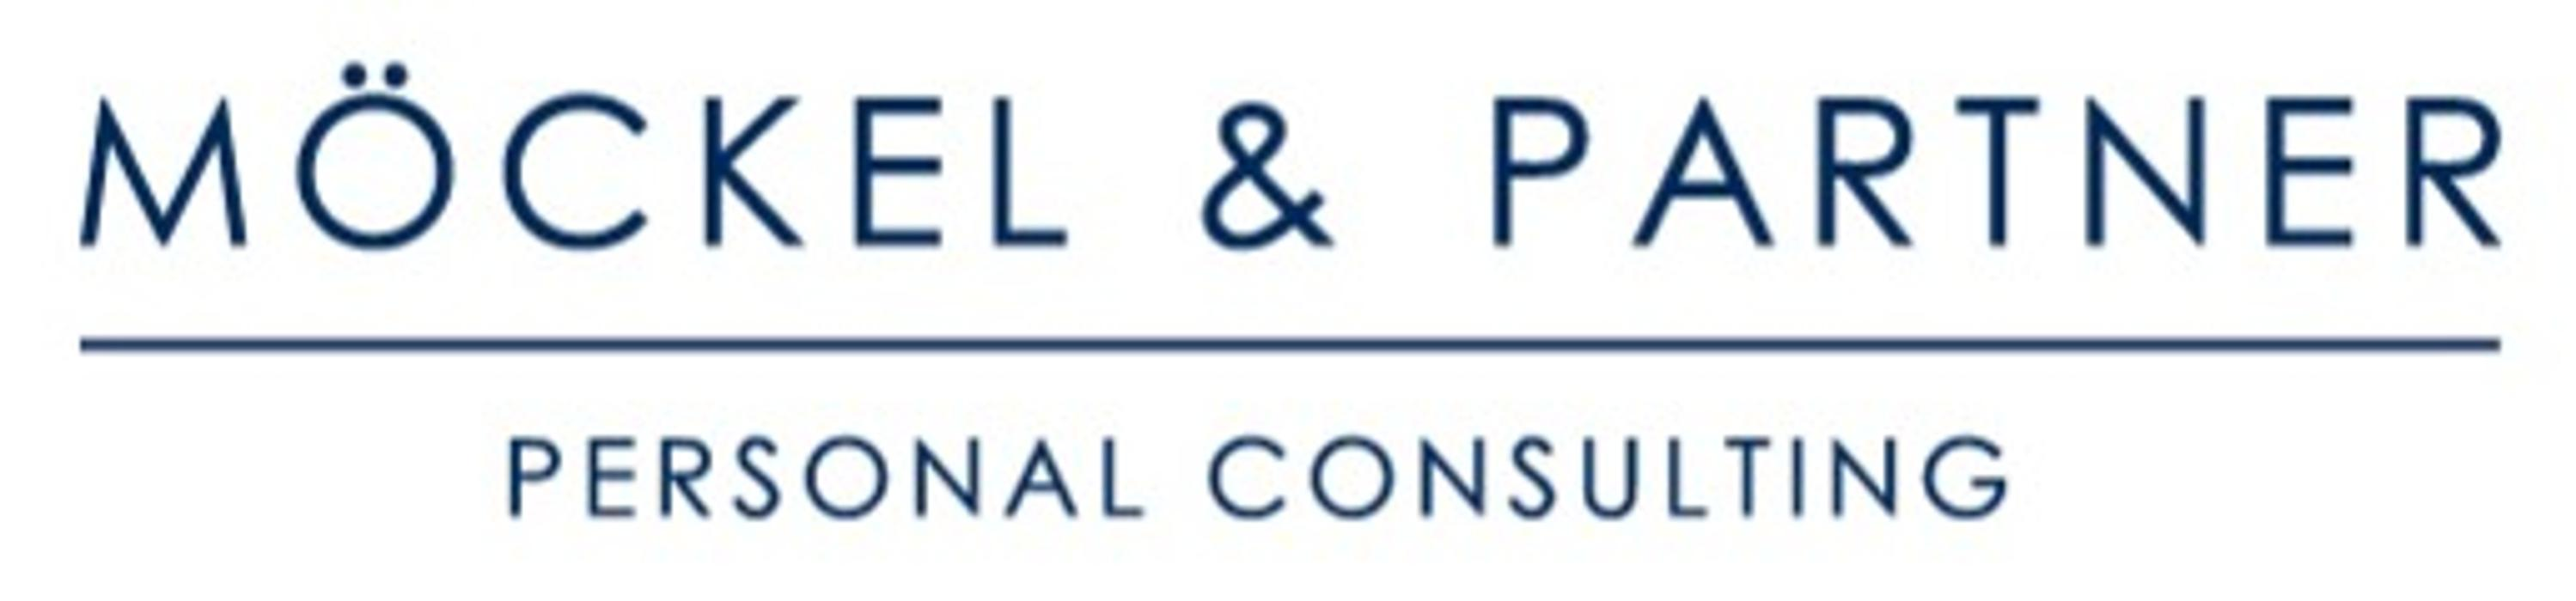 Bild zu Möckel & Partner m&p Personal Consulting GmbH in Seligenstadt